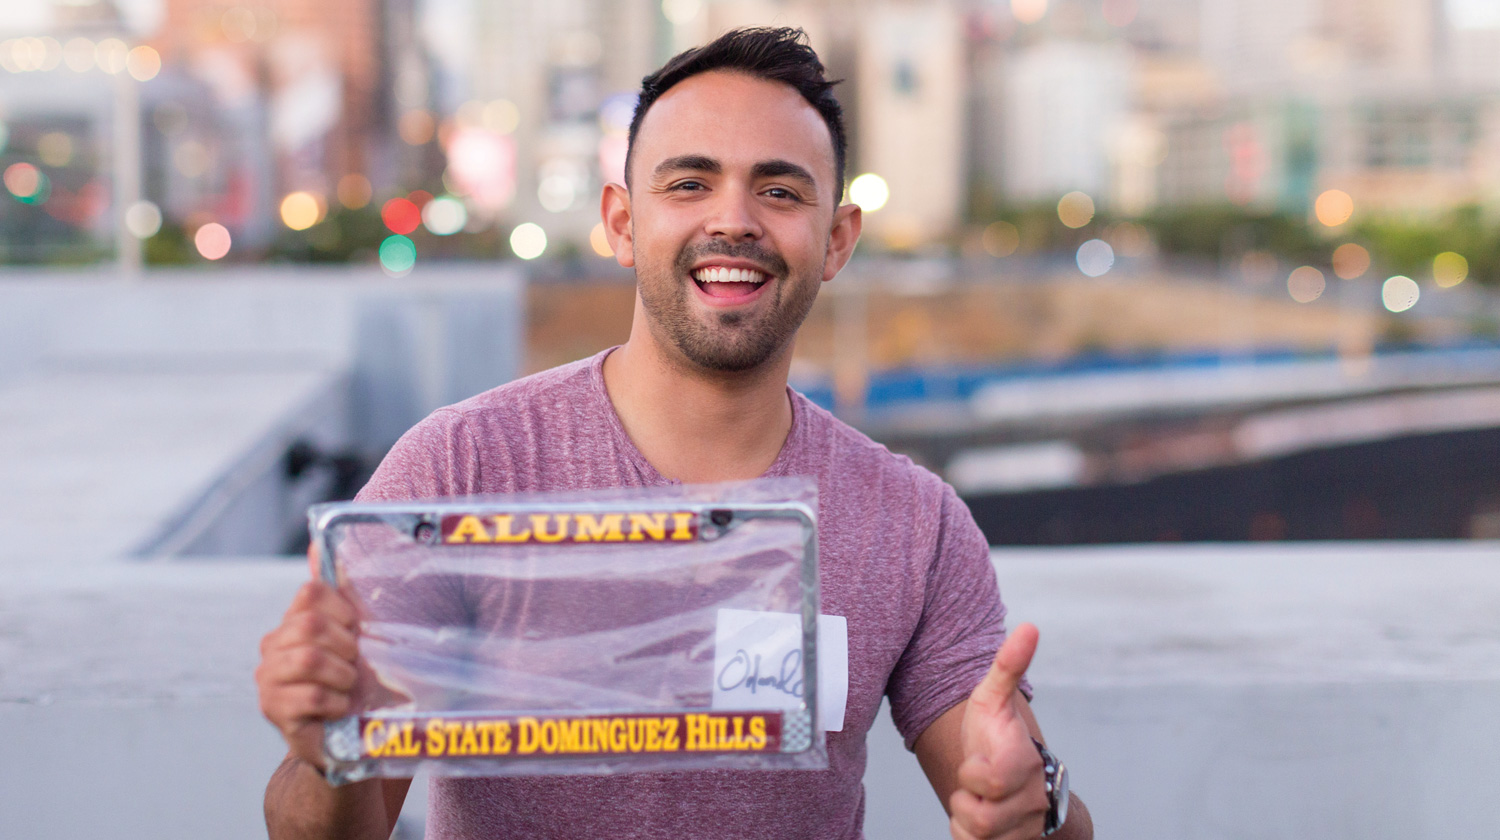 male alumn at a previous CSUDH alumni event holds CSUDH license plate gift